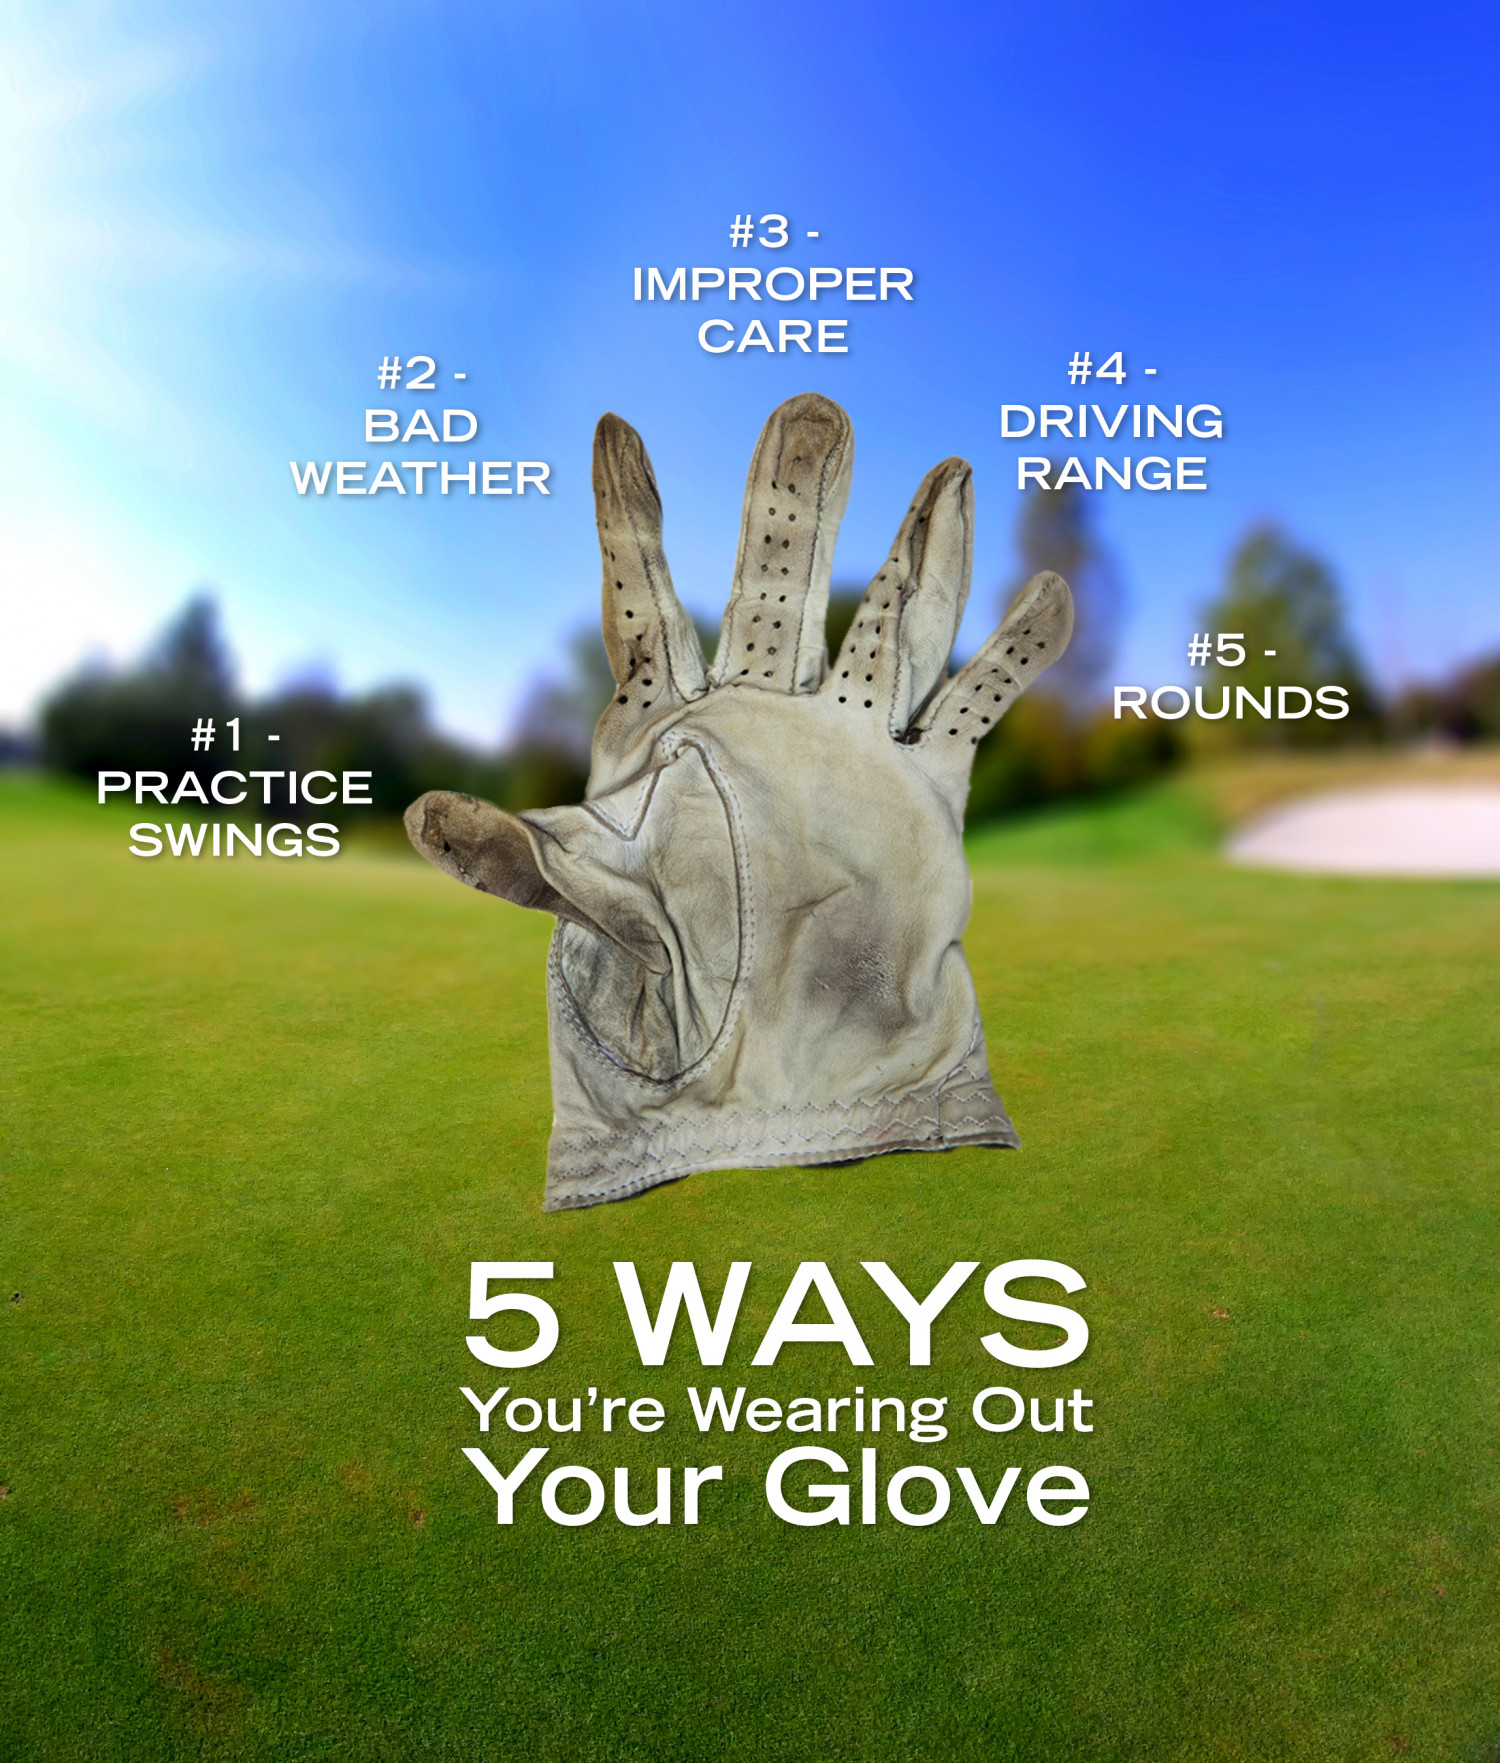 5 Ways You're Wearing Out Your Glove Infographic